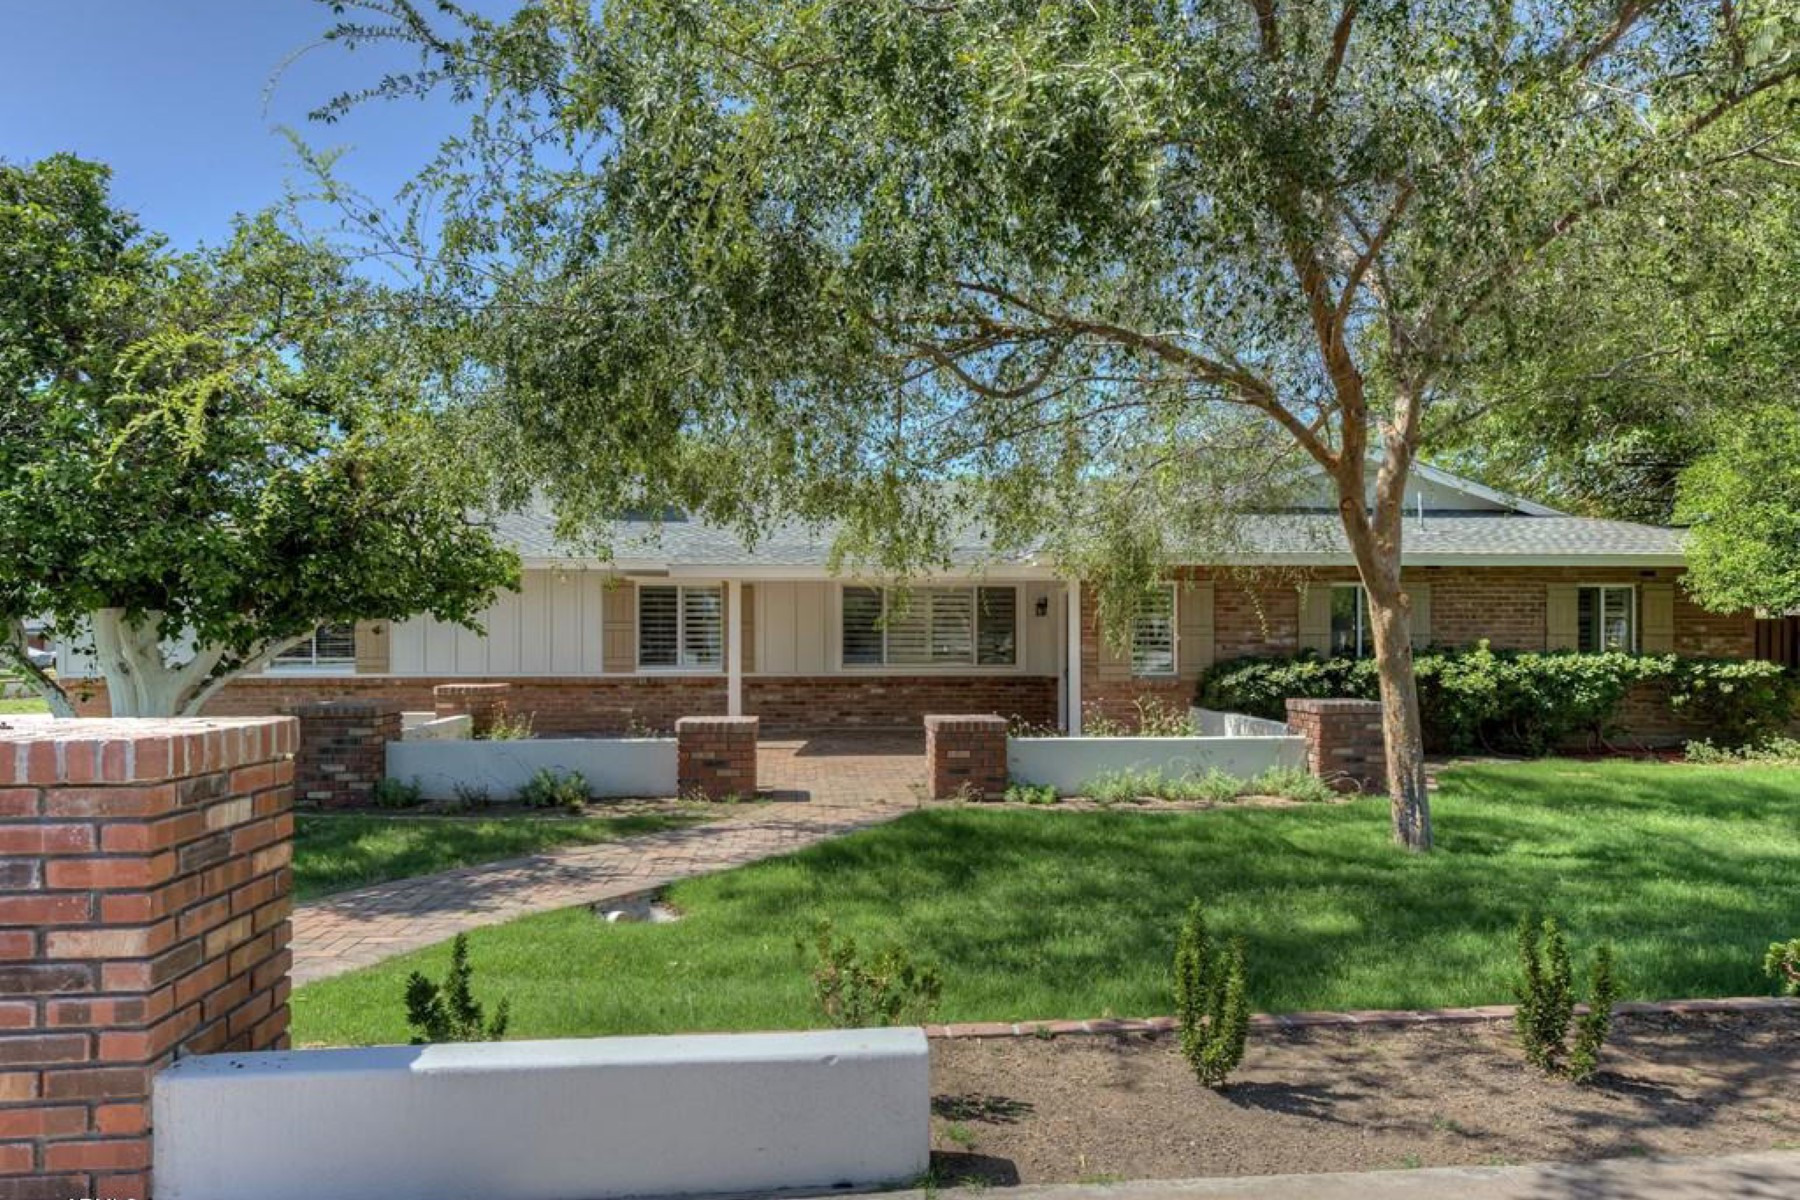 단독 가정 주택 용 매매 에 Great Single Level Ranch Home in the Heart of Arcadia 6139 E Calle Del Media Scottsdale, 아리조나, 85251 미국